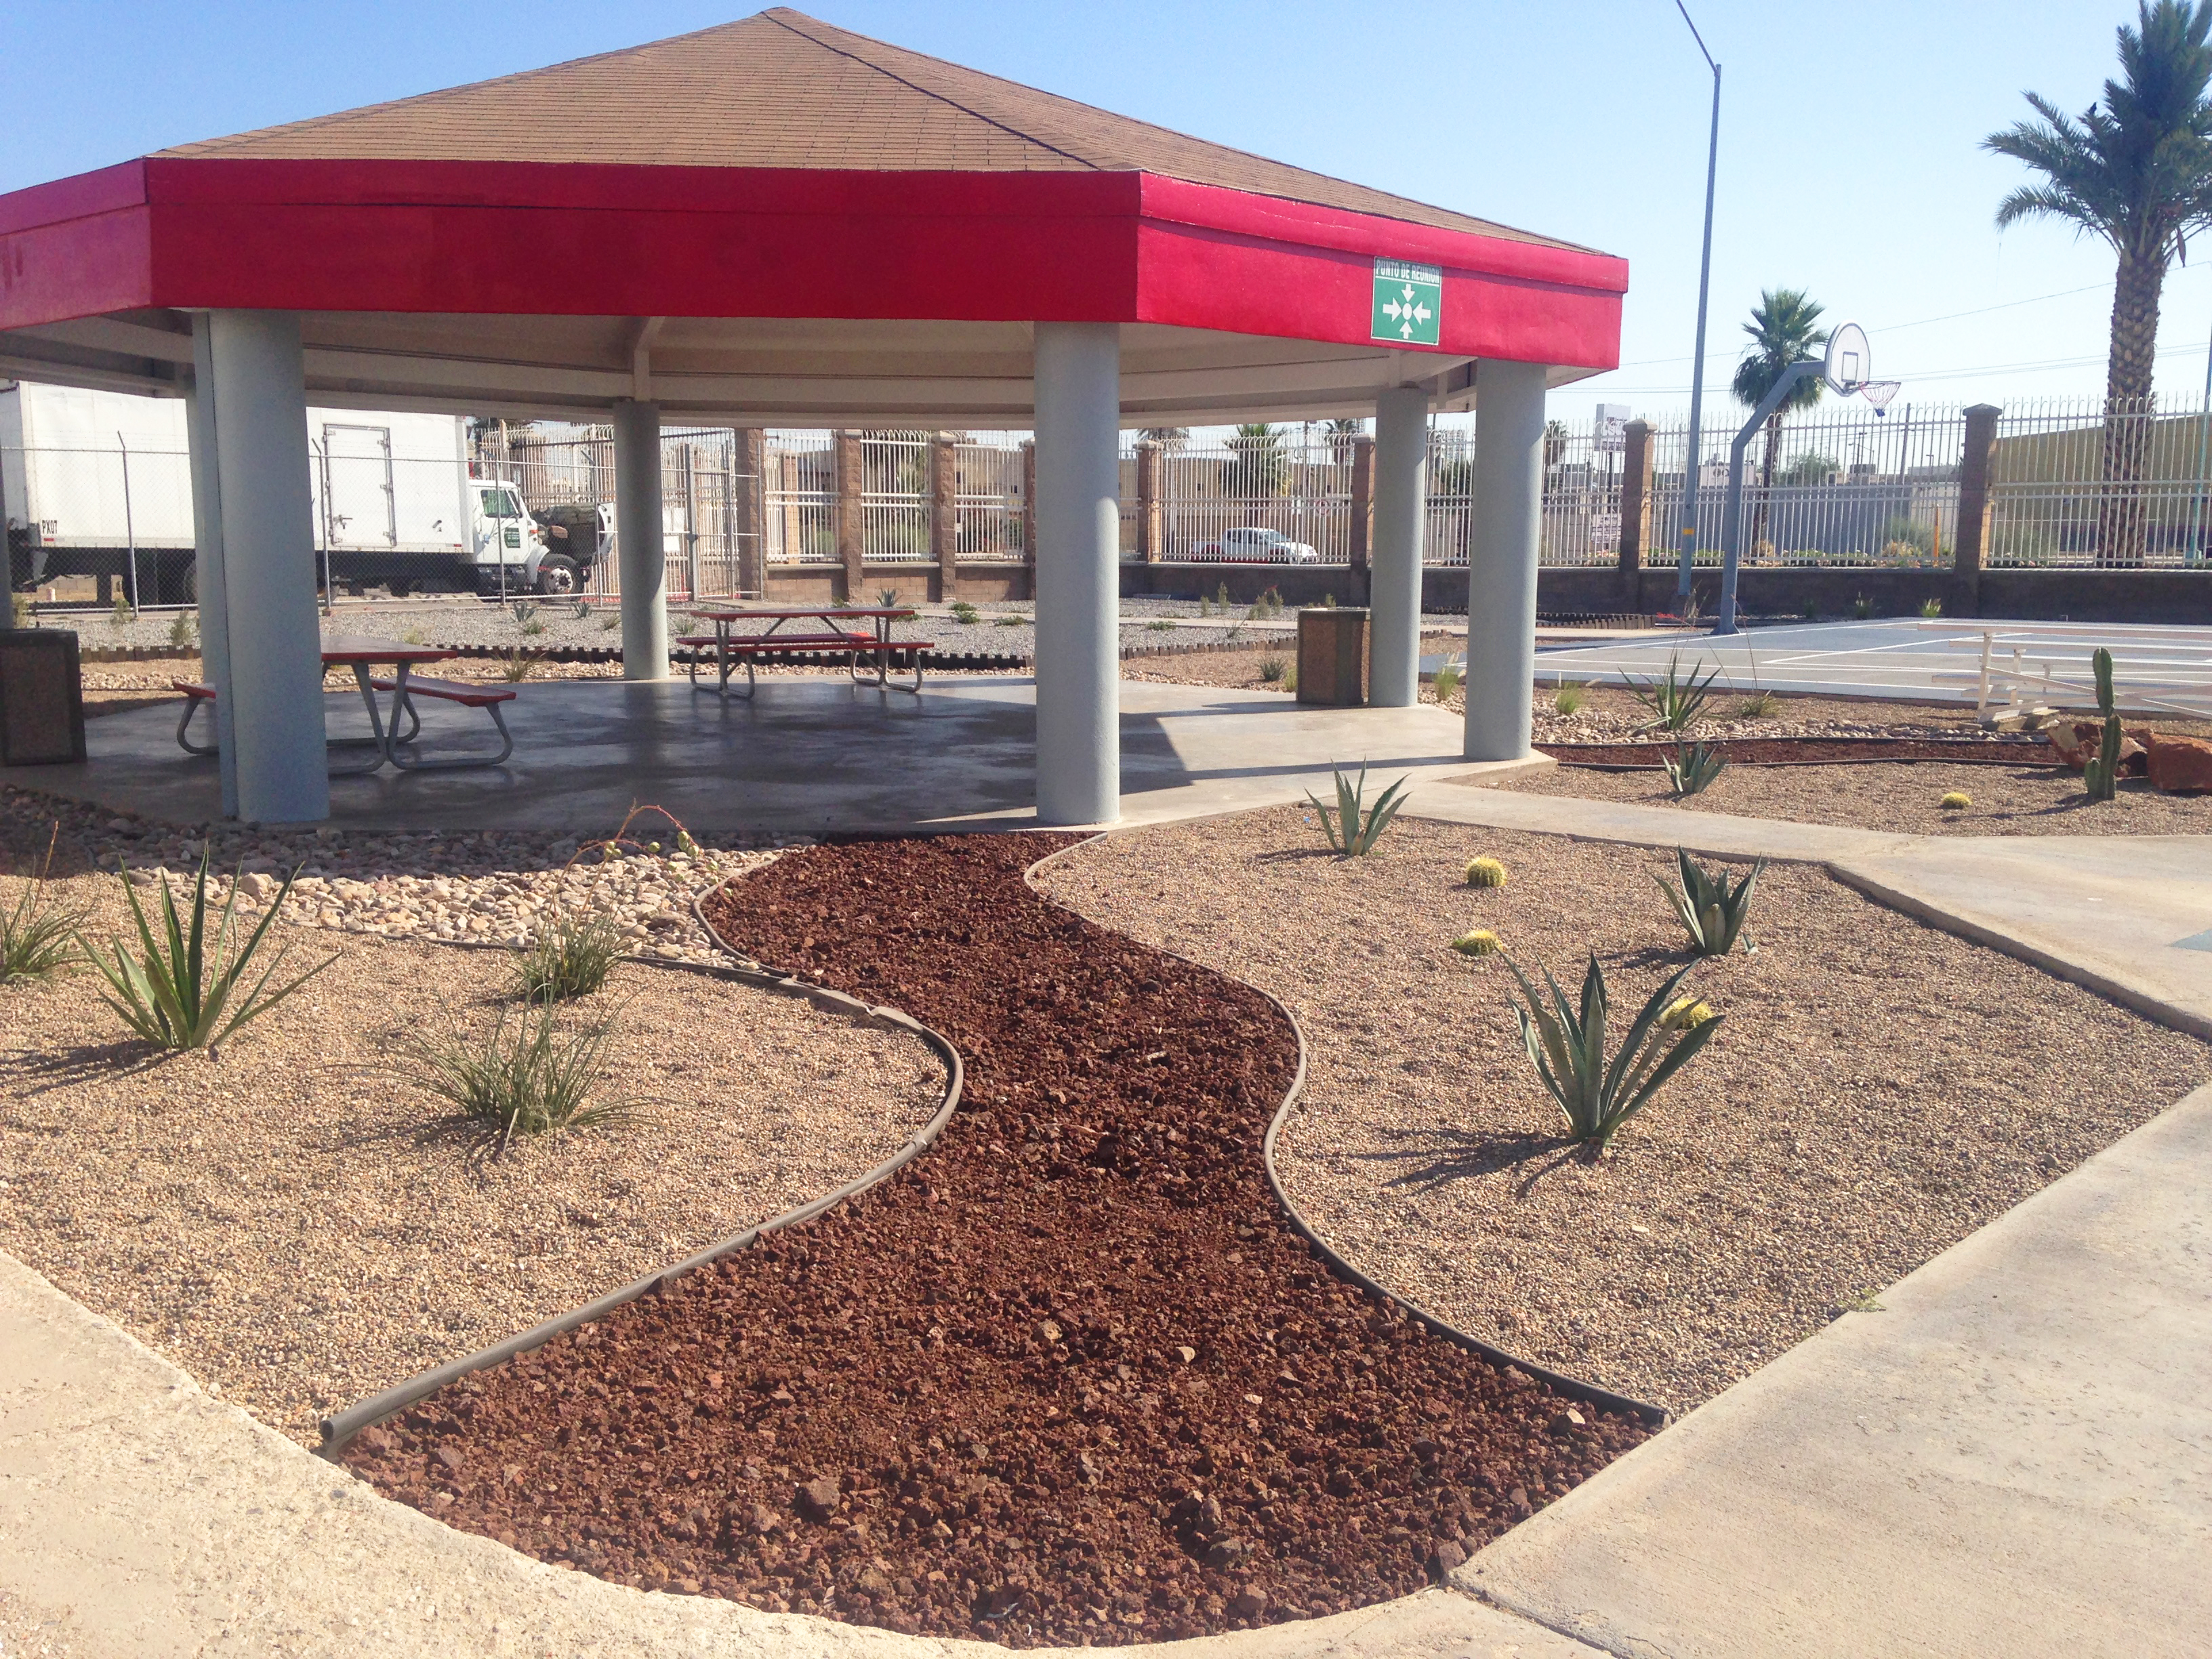 Bosch Mexicali facility reduces water consumption in desert climate - PIMSA INDUSTRIAL PARKS IN MEXICO 6